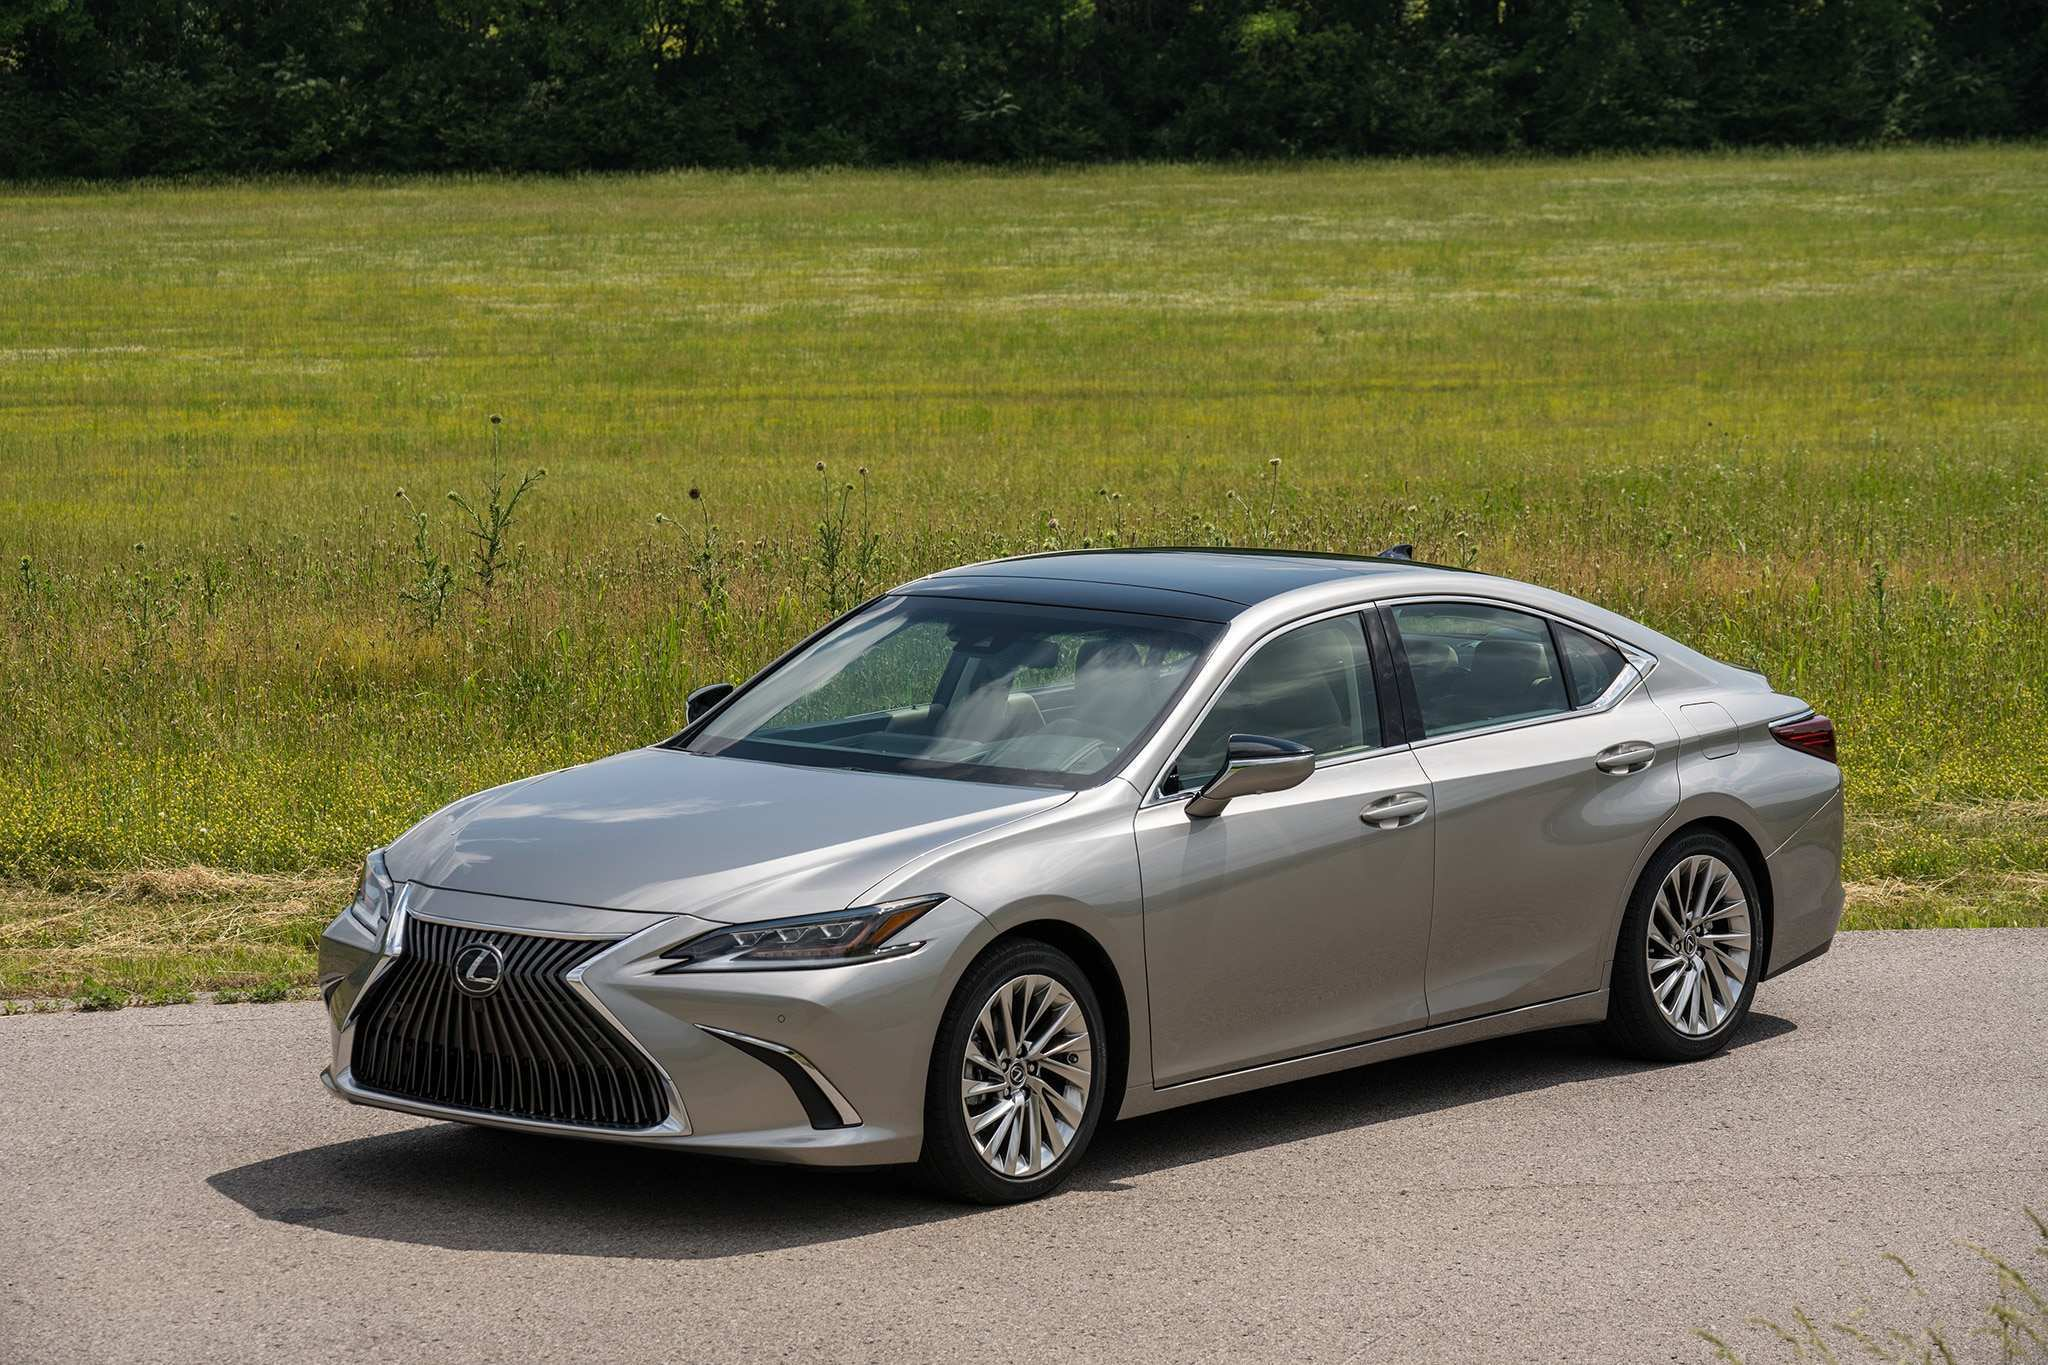 59 All New The Lexus Es 2019 Weight Review And Specs Redesign and Concept by The Lexus Es 2019 Weight Review And Specs